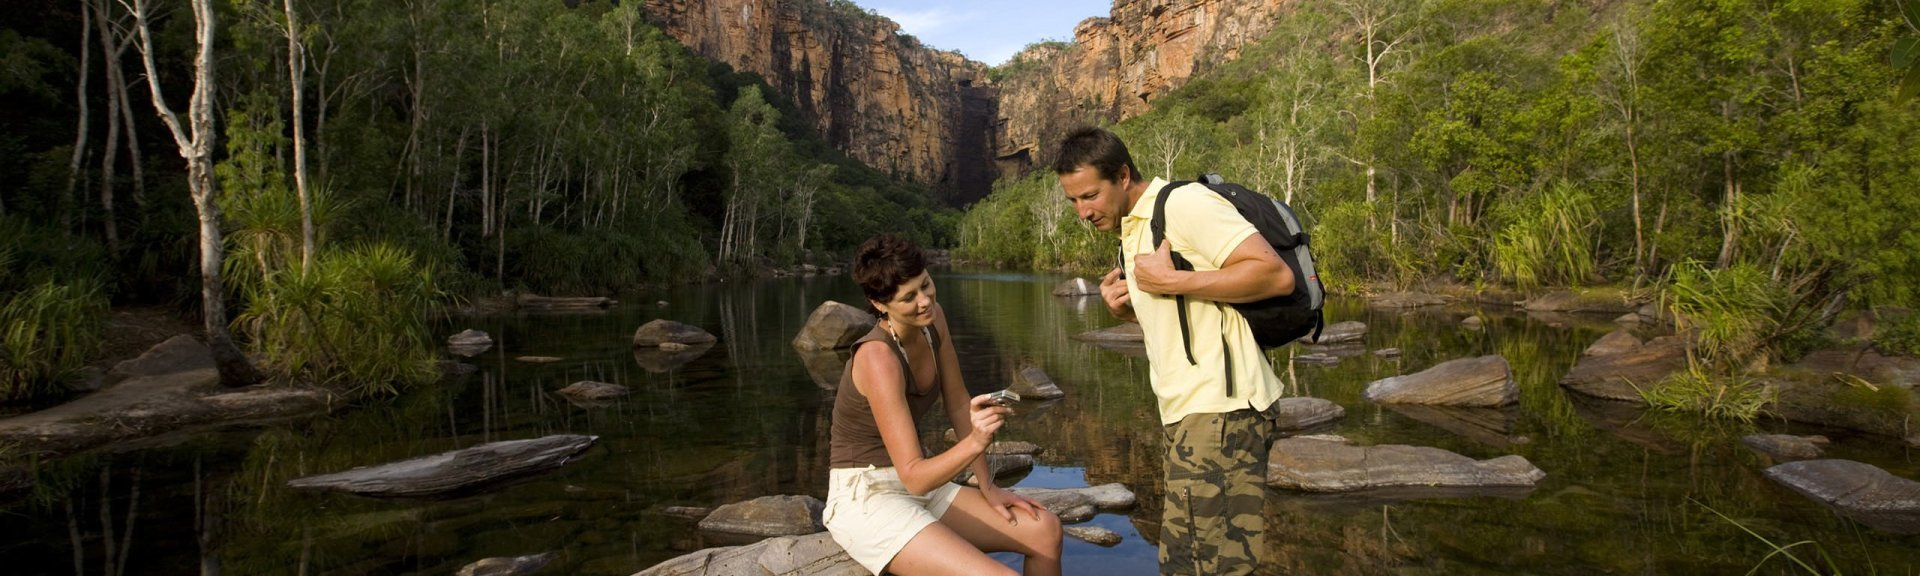 Visitors bushwalking in Kakadu. Photo: Adventure Tours